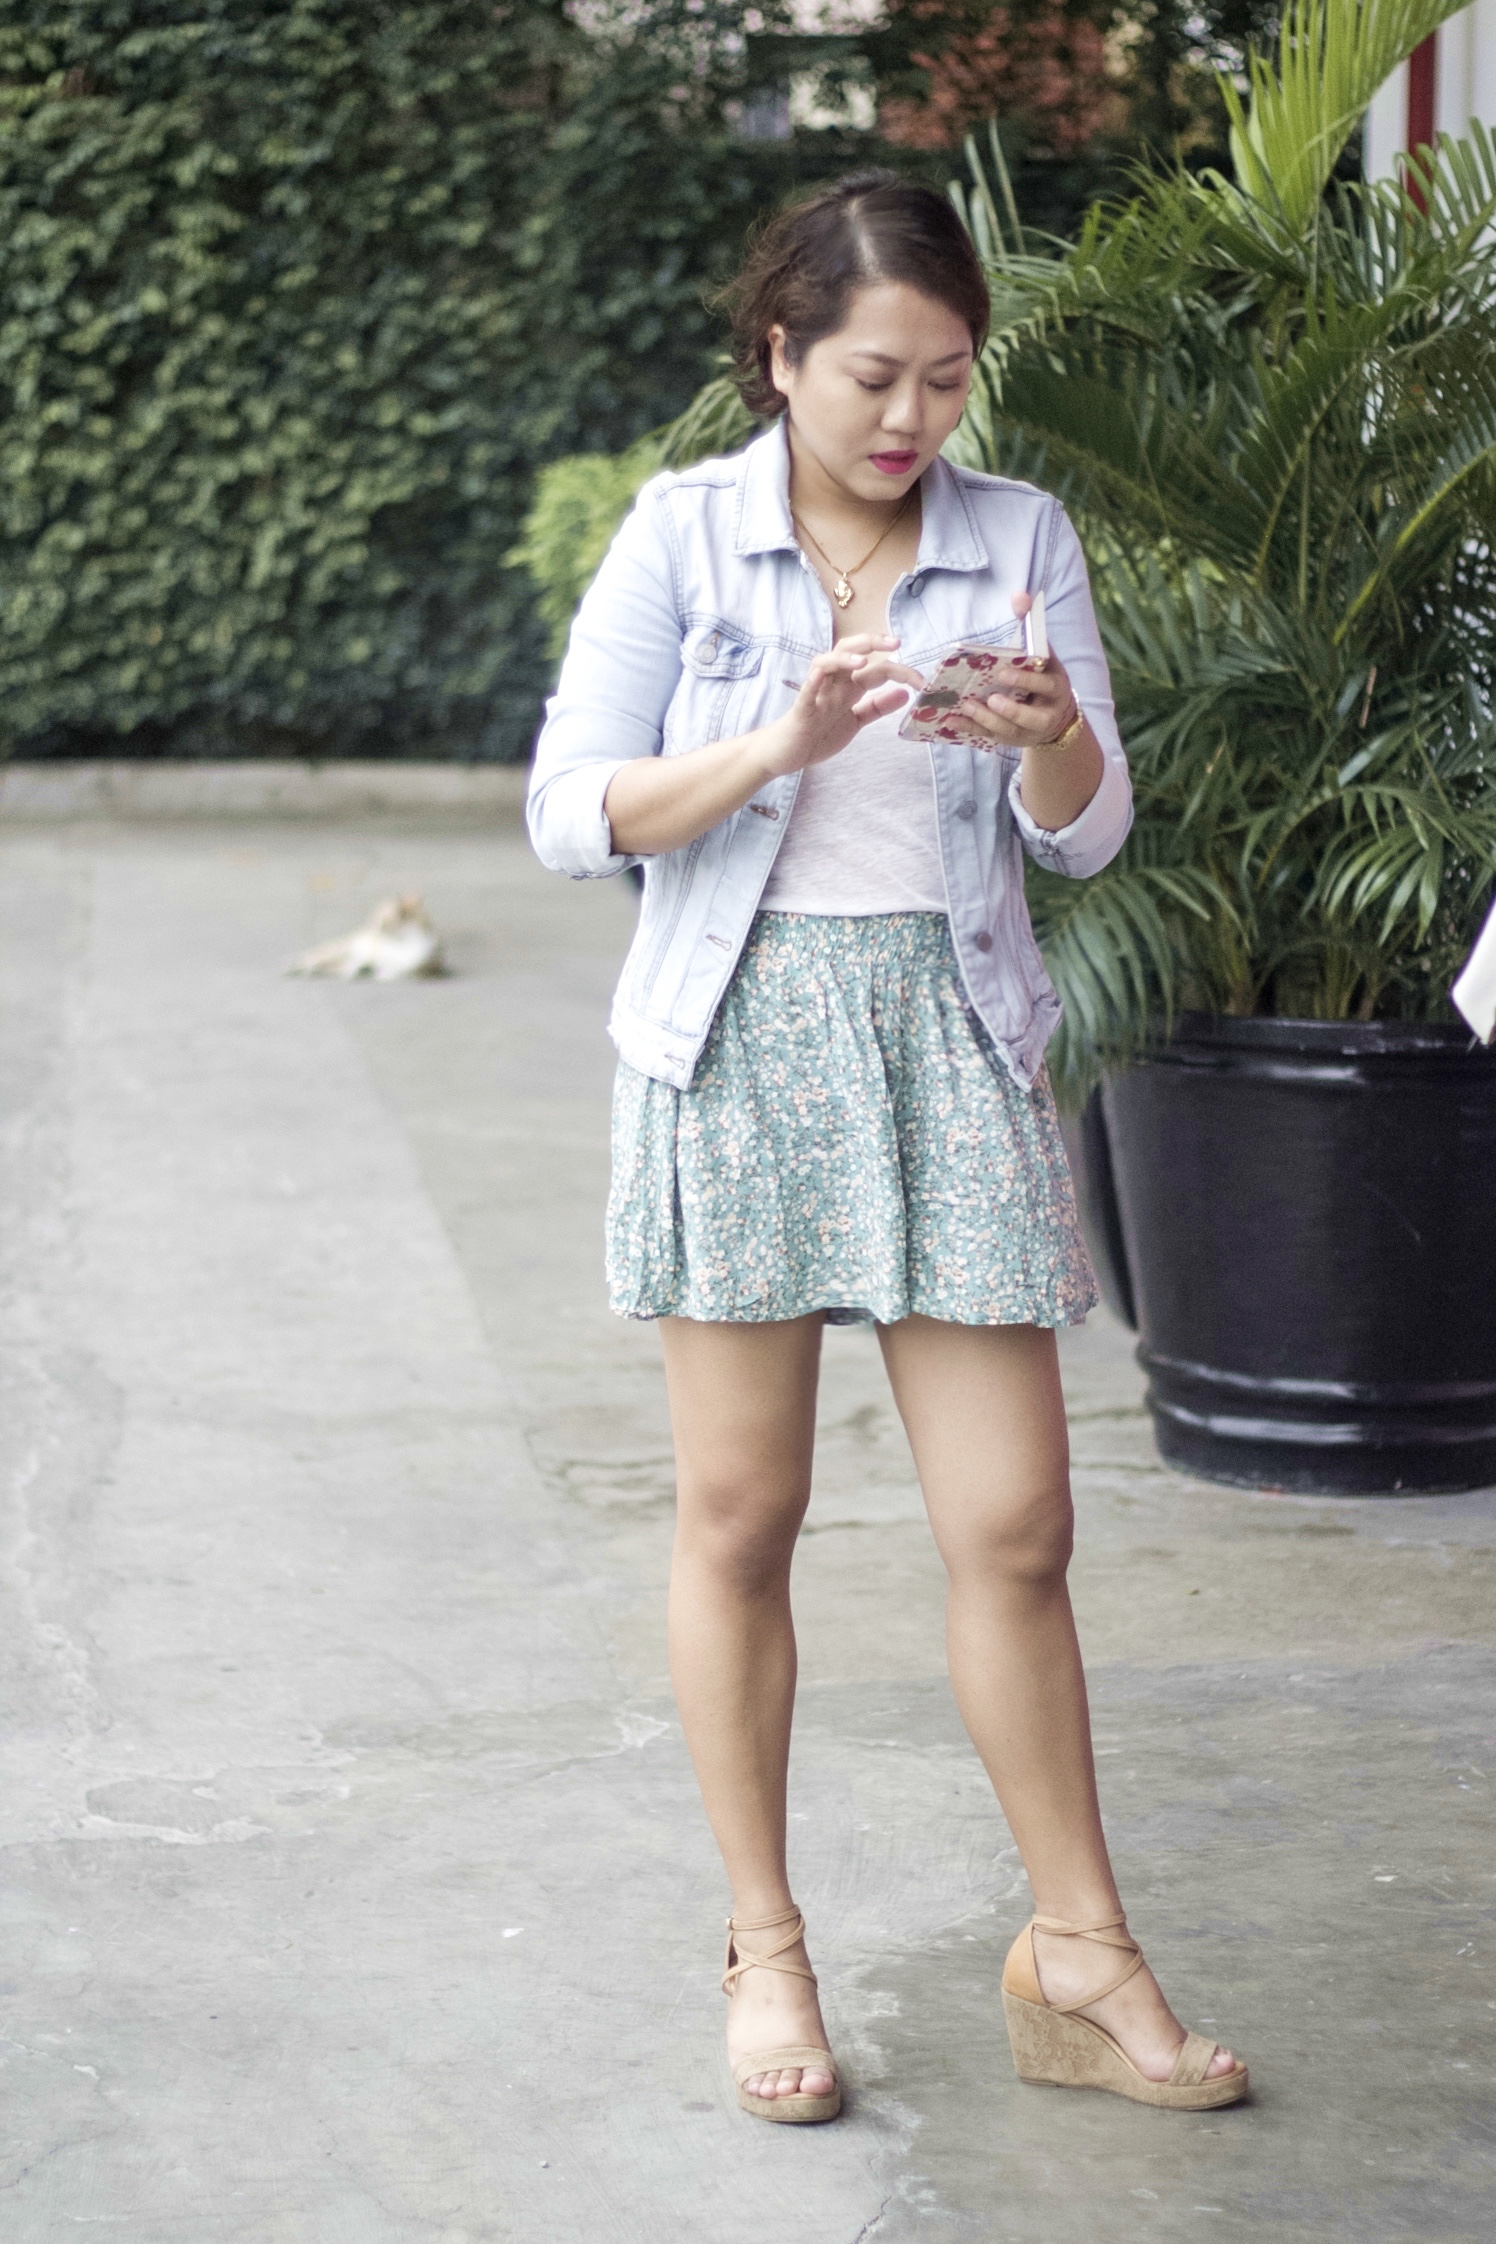 Denim jacket from Mango / White shirt from Zara / Tan wedges from Ferretti Shoes